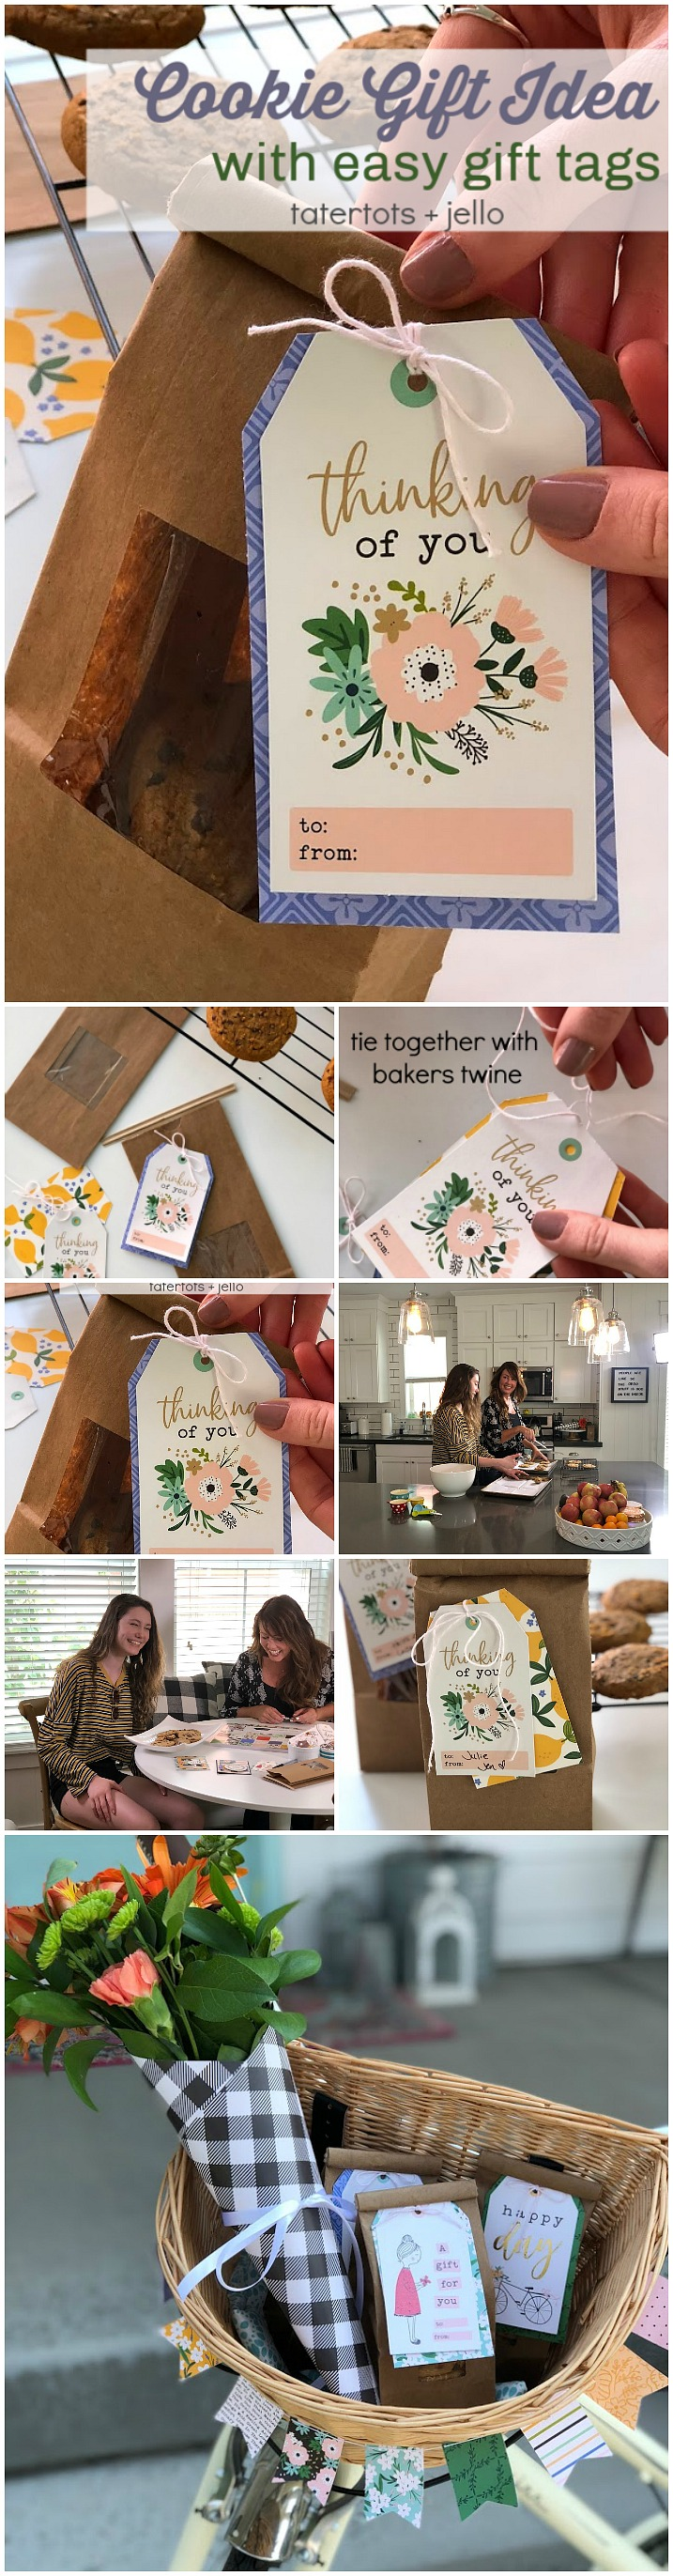 Cookie gift idea with easy handmade gift tags